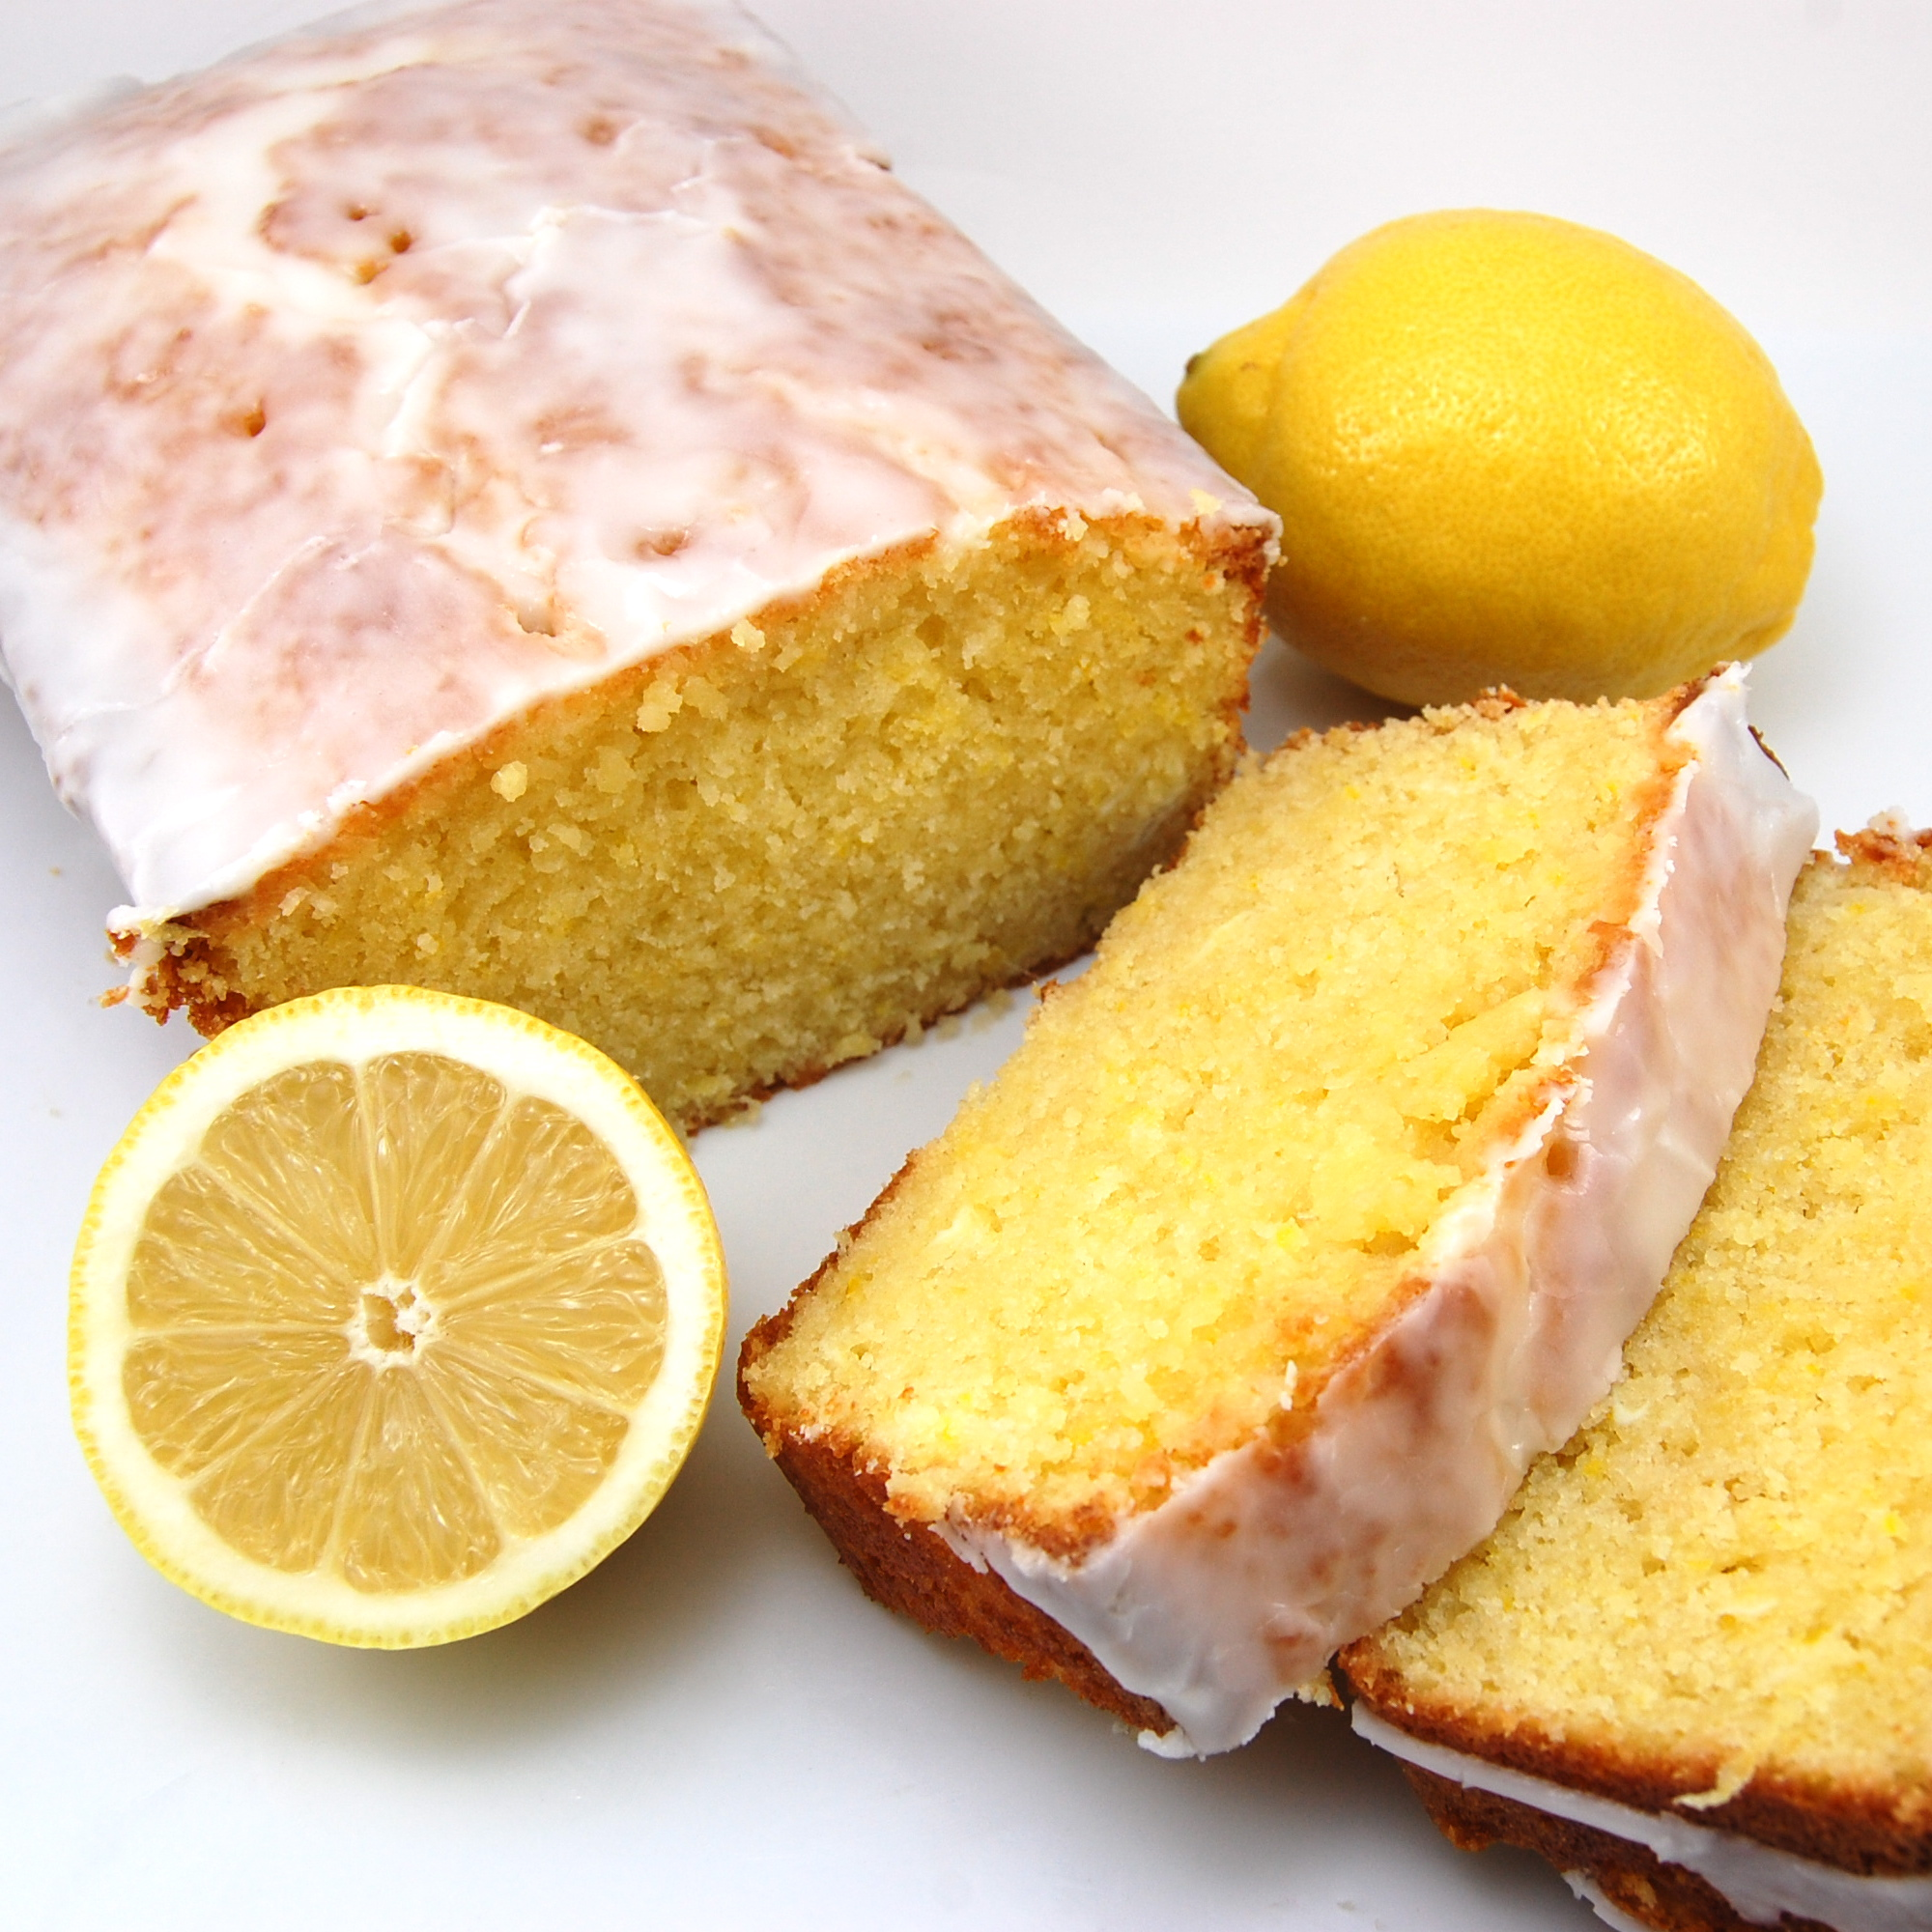 Tequila Glazed Lemon Bread With Rosemary Walnut Filling Recipes ...